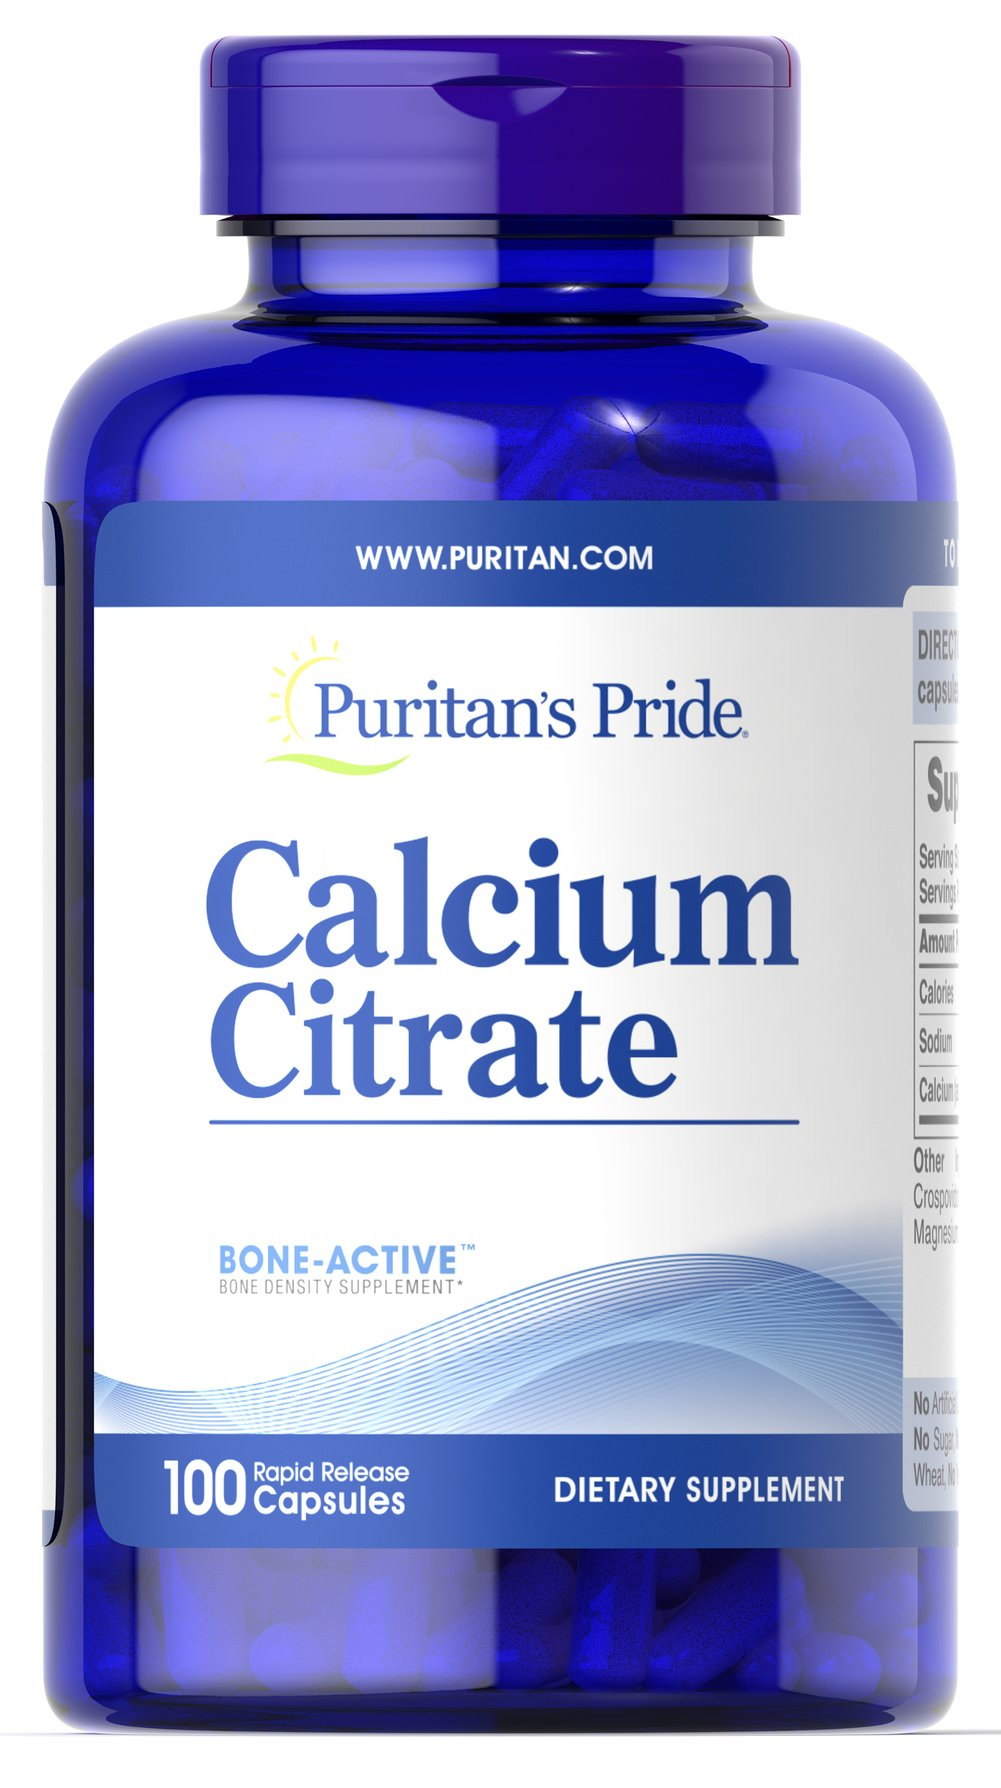 Calcium Citrate <p>Calcium is a major mineral essential for proper nutrition.** Your body could not survive without it. Calcium promotes bone strength, but also helps to maintain the health of other vital systems in the body, including the heart, muscles and nerves.** Some scientific studies indicate that Calcium Citrate may support the health of the colon.**</p> 100 Capsules 250 mg $13.99